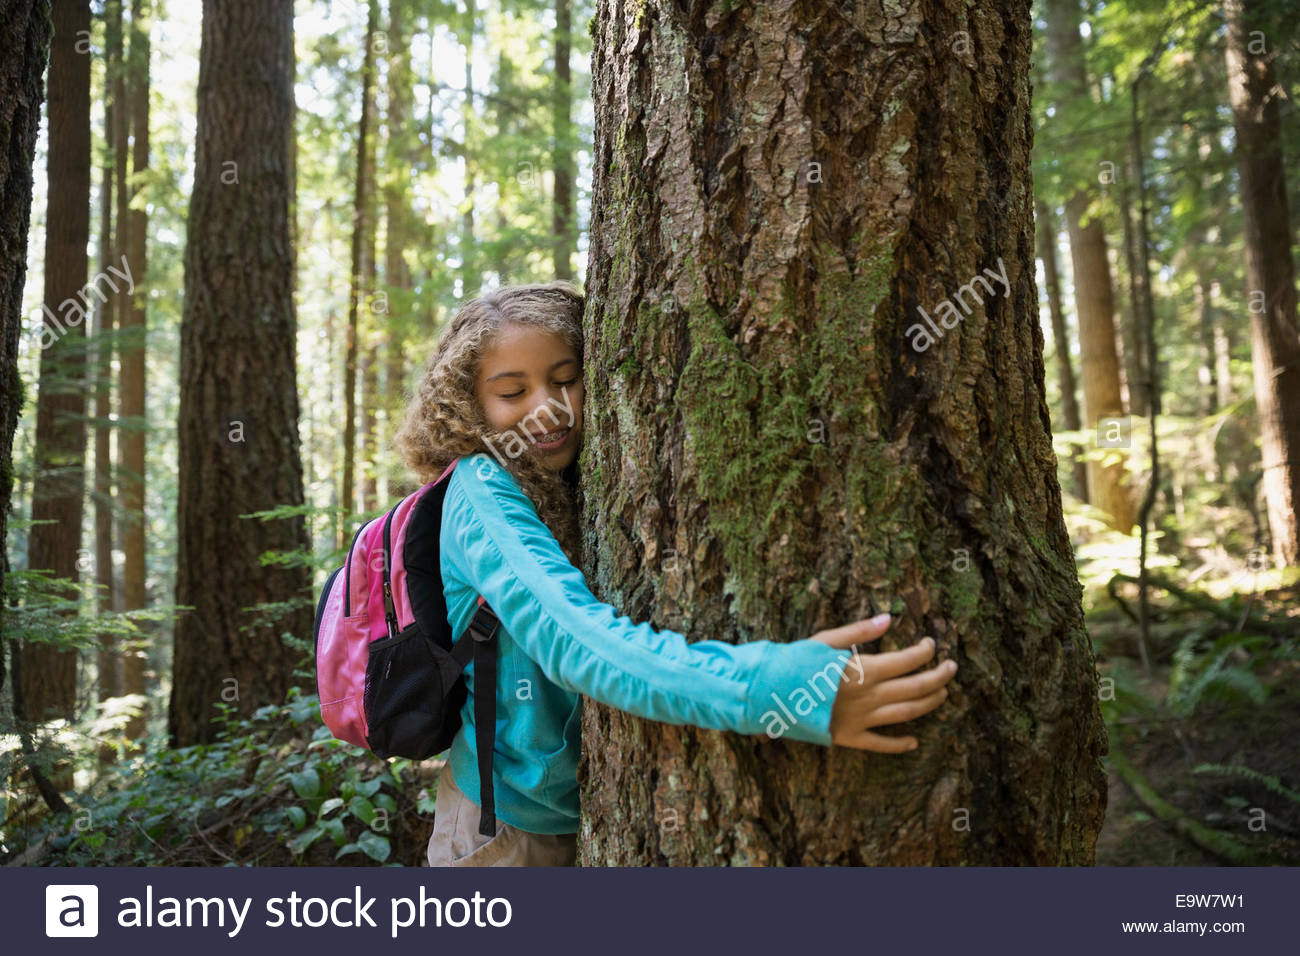 Girl with backpack hugging tree trunk in woods - Stock Image